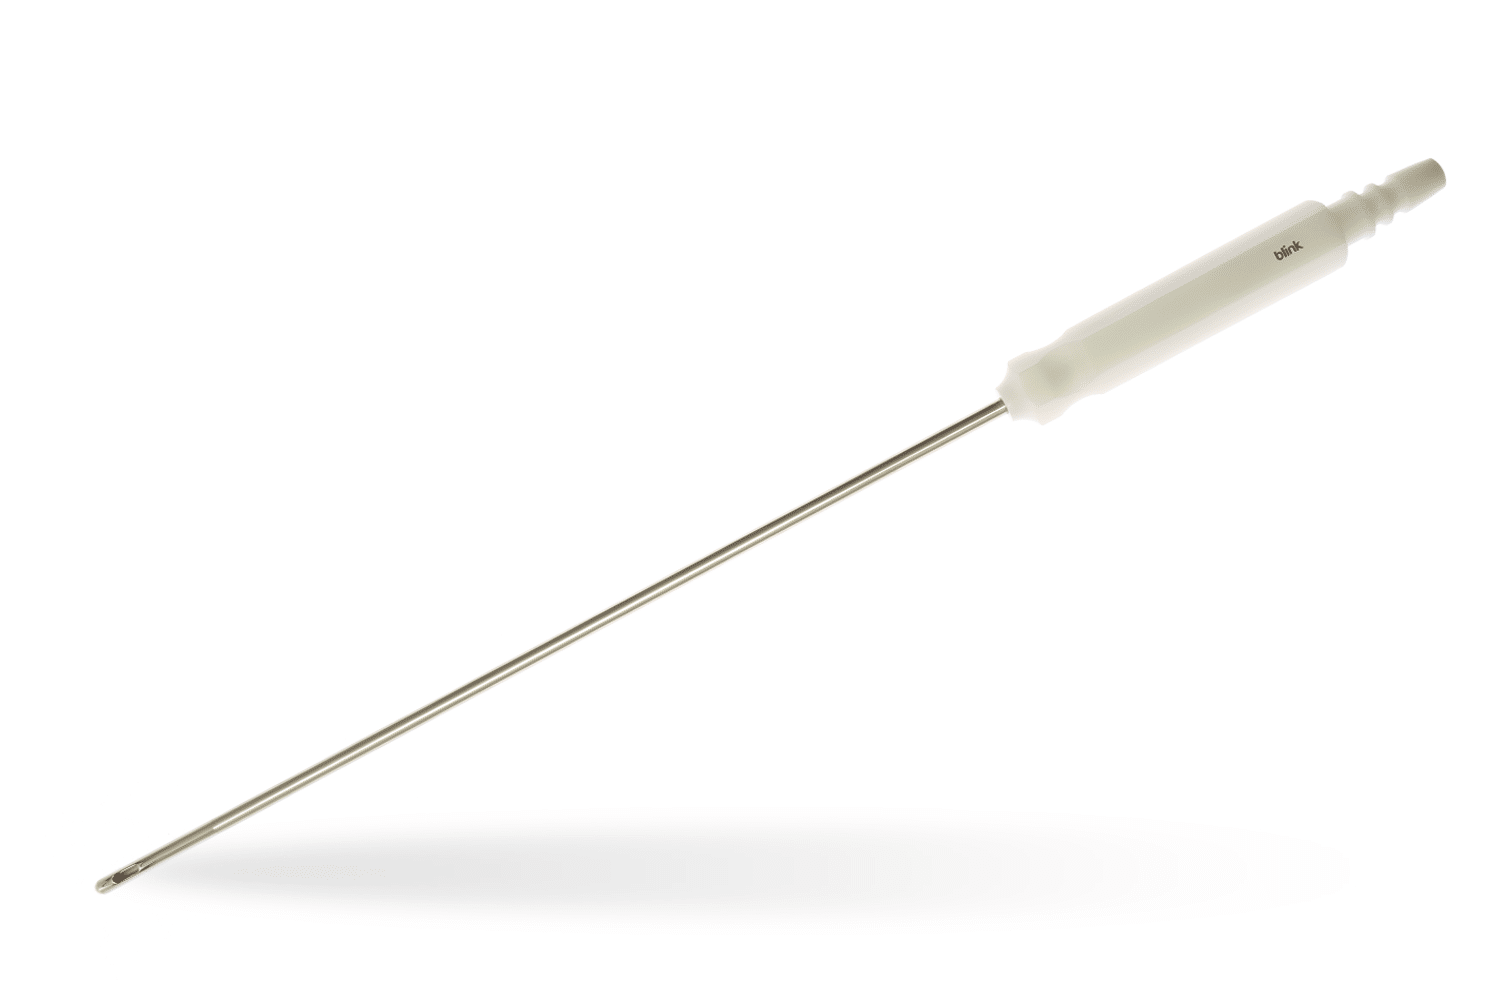 HR622 - Cannula Liposuction